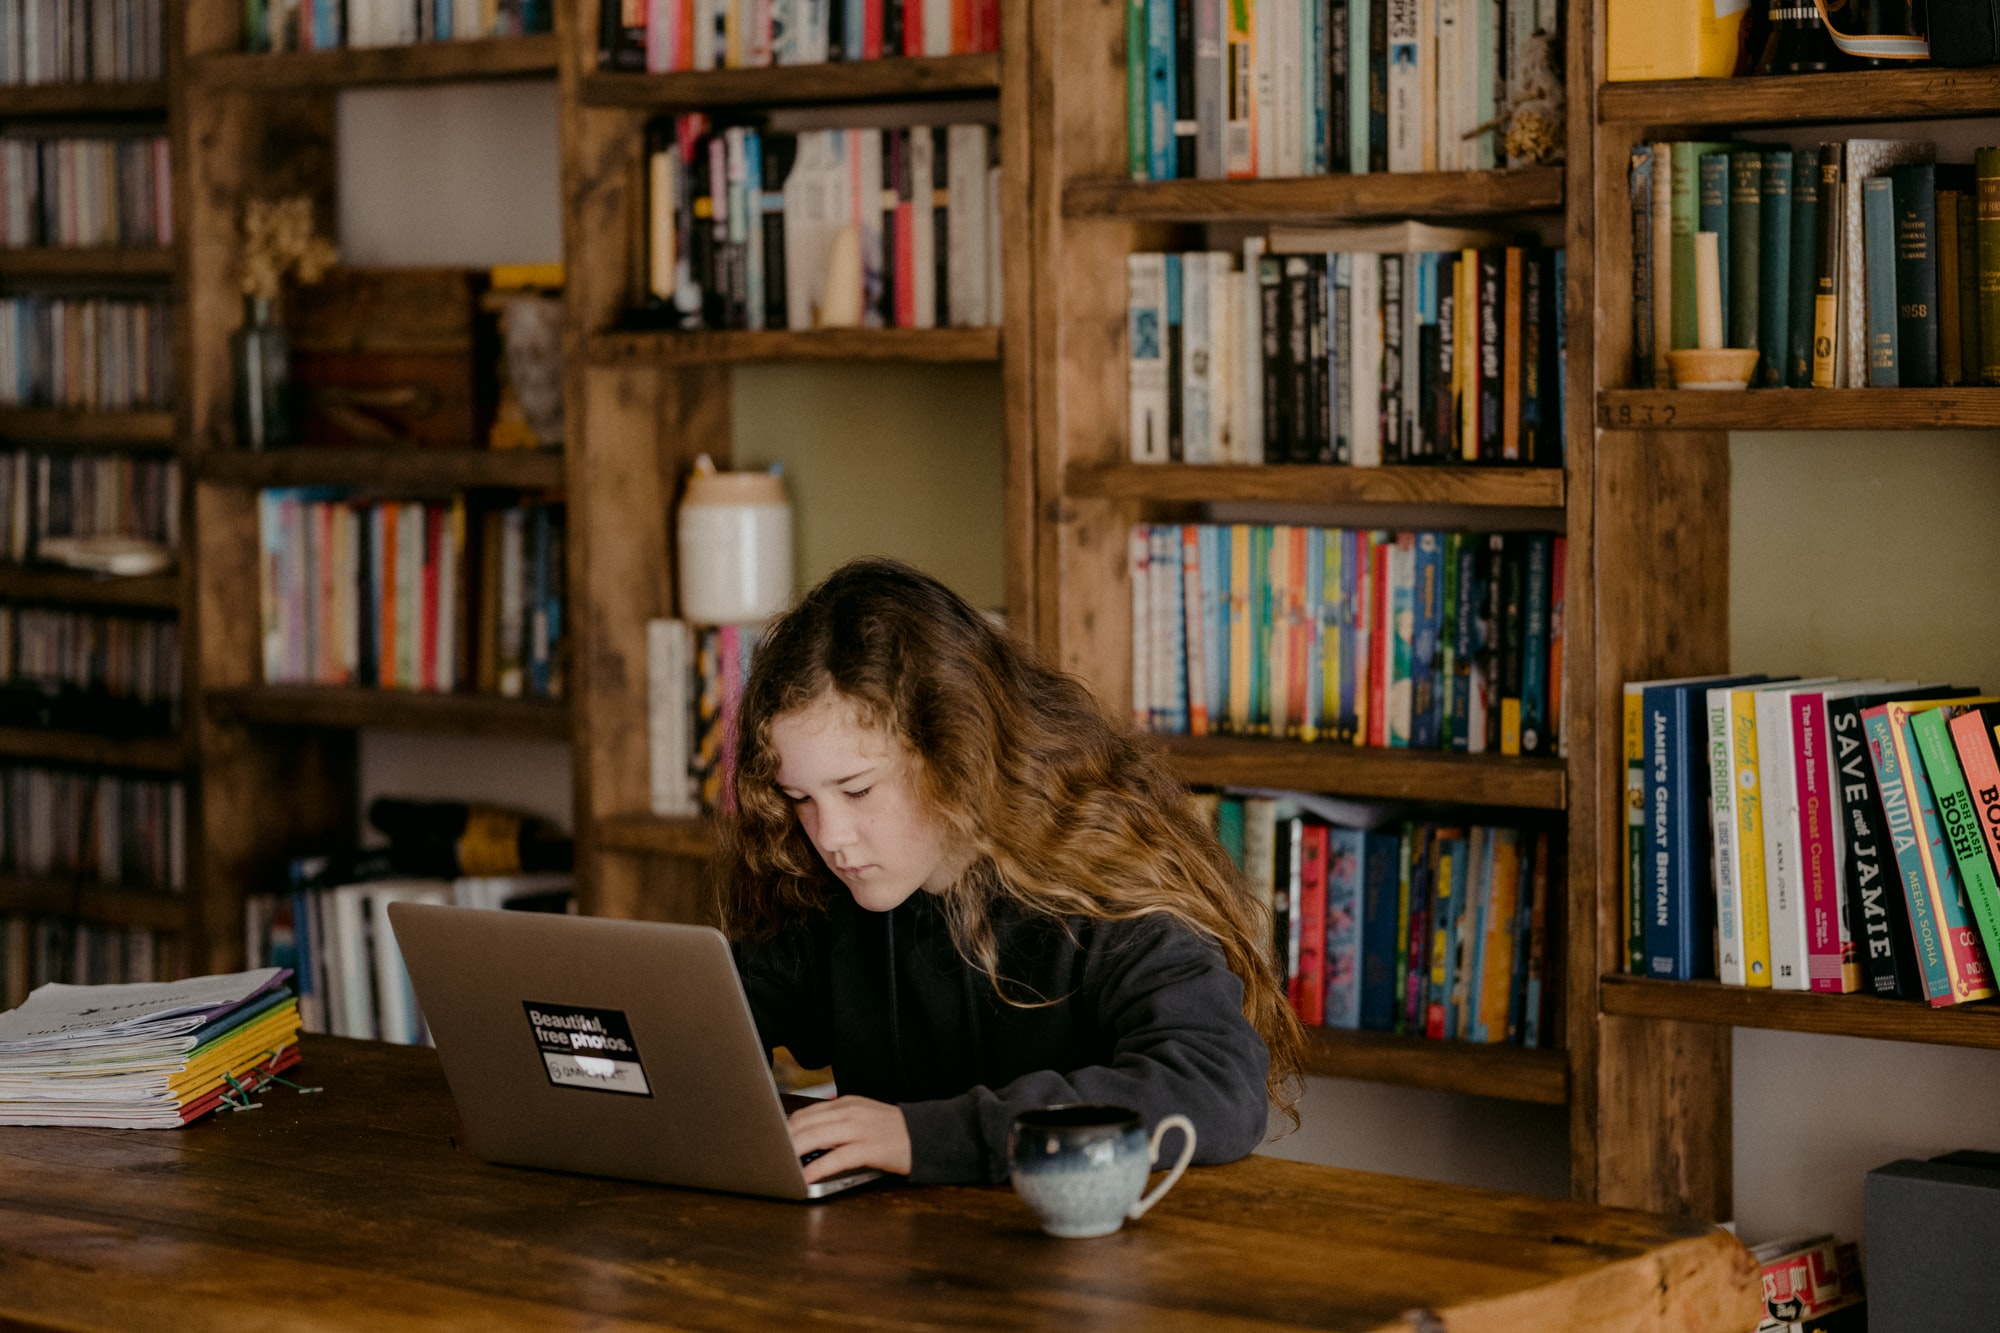 Young teen doing schoolwork at home after UK schools close due to the Coronavirus.